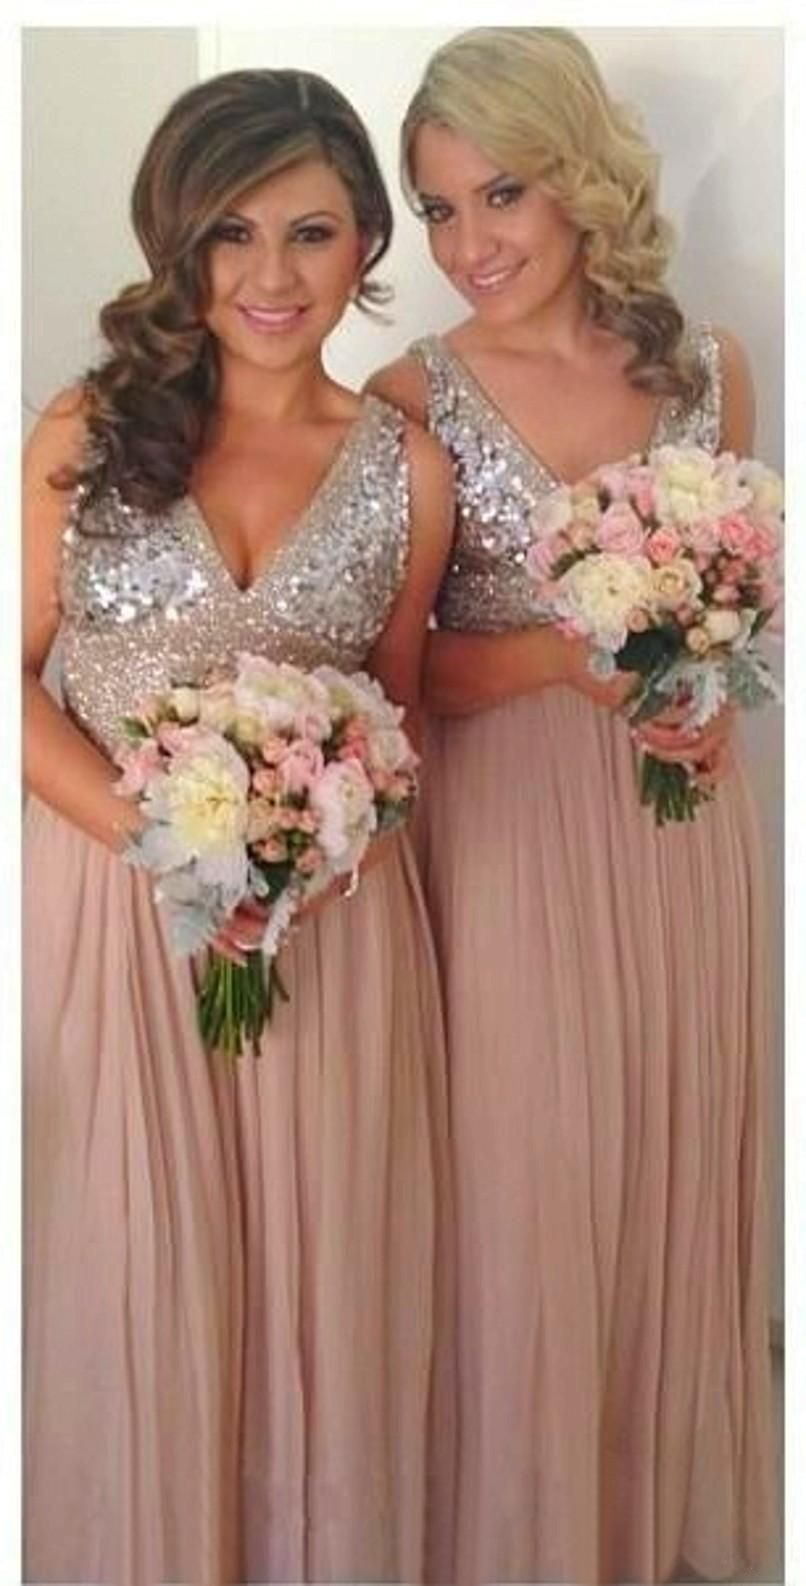 Cheap sequins chiffon v neck bridesmaid dresses plus size rose cheap sequins chiffon v neck bridesmaid dresses plus size rose gold sparkly maid of honor bridal wedding party gowns maternity 2016 custom made as low as ombrellifo Image collections